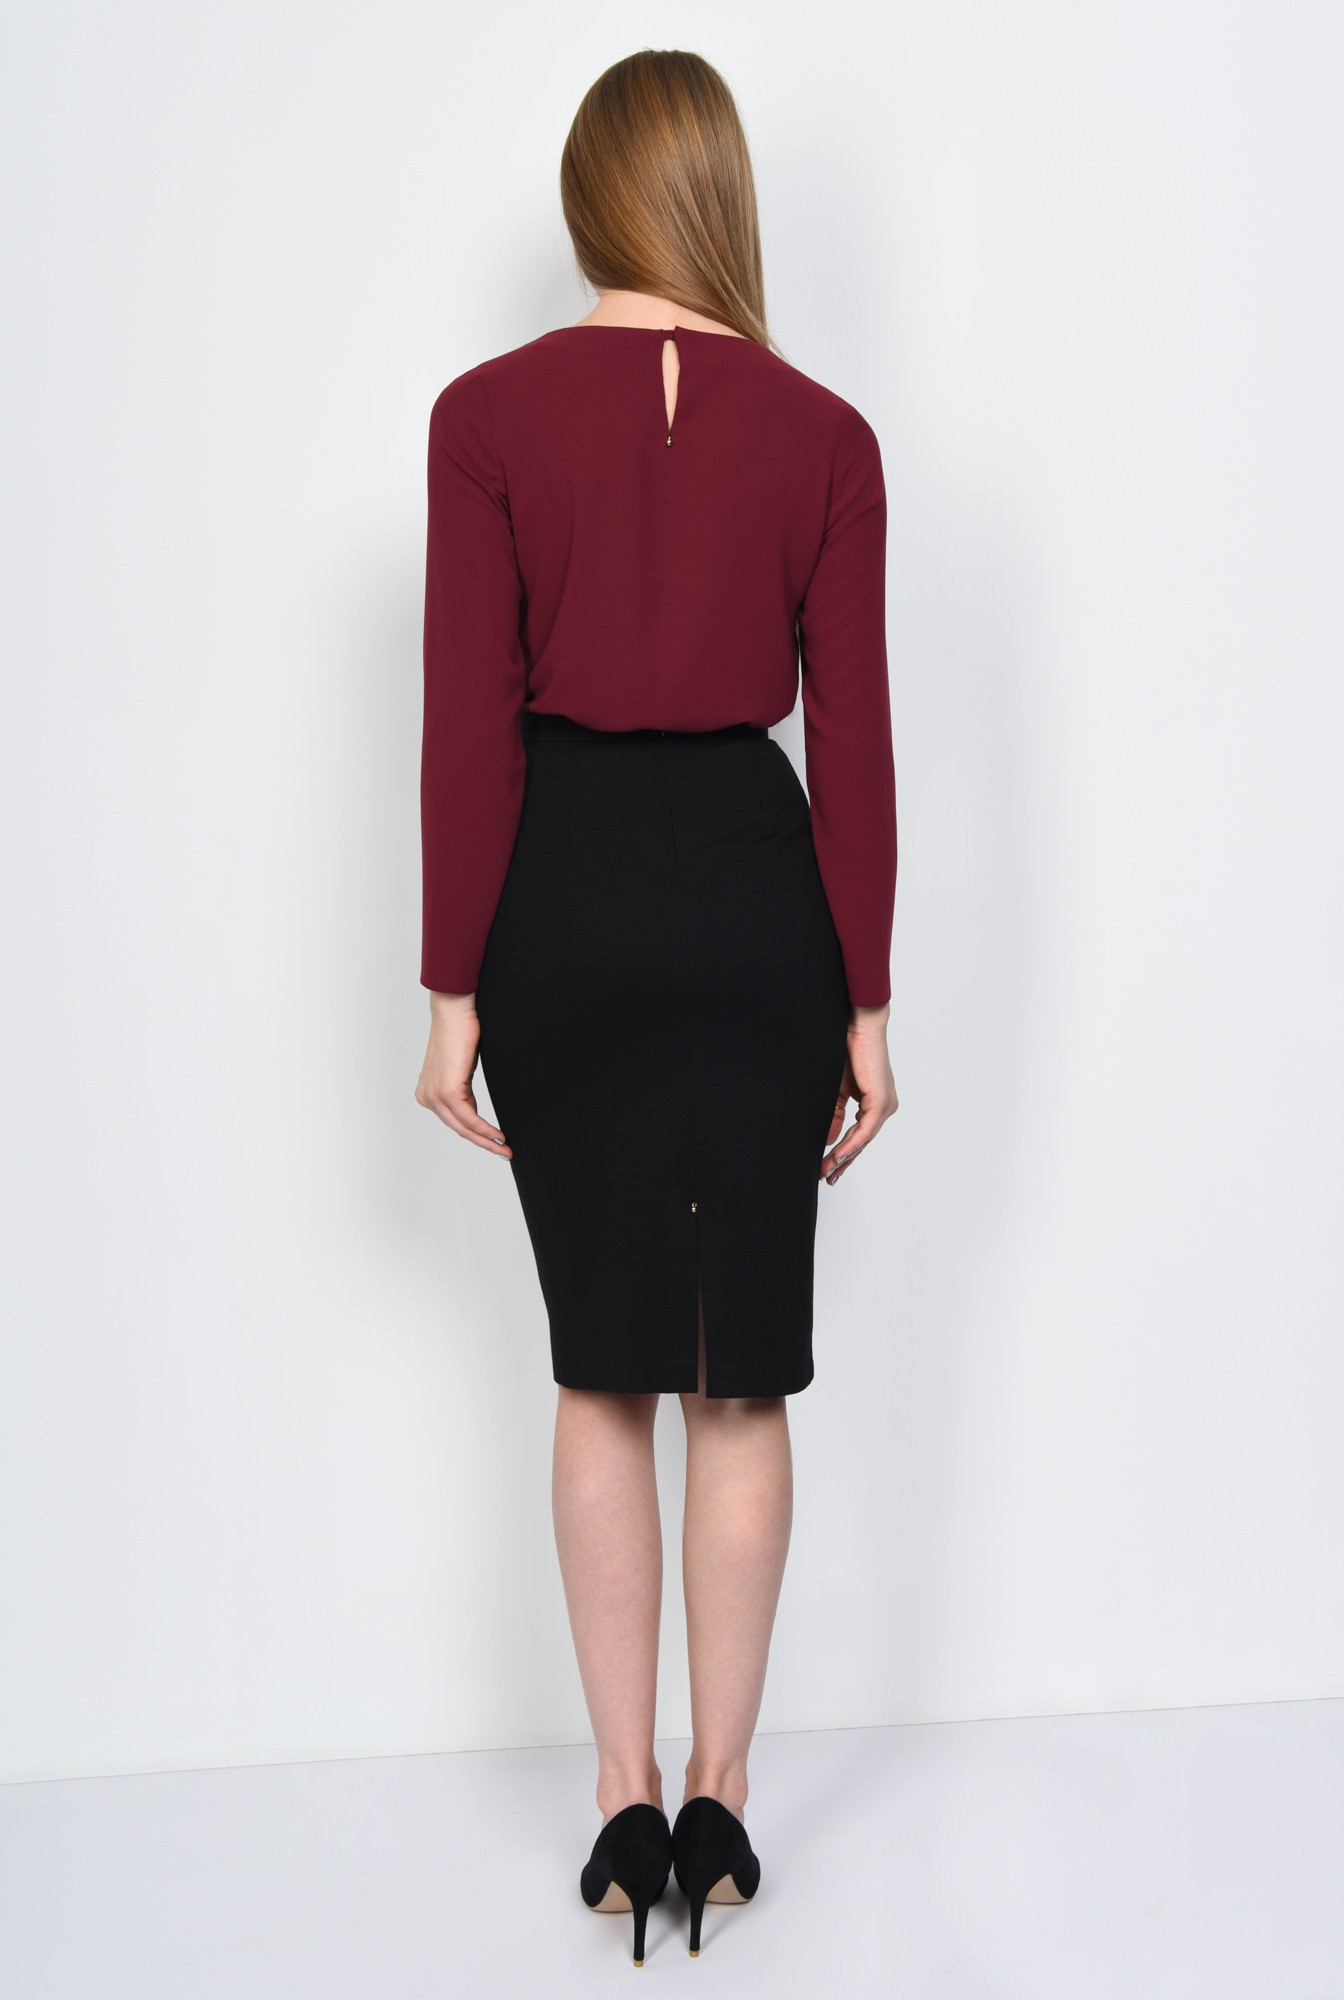 1 - BLUZA OFFICE DREAPTA BL 162-BURGUNDY